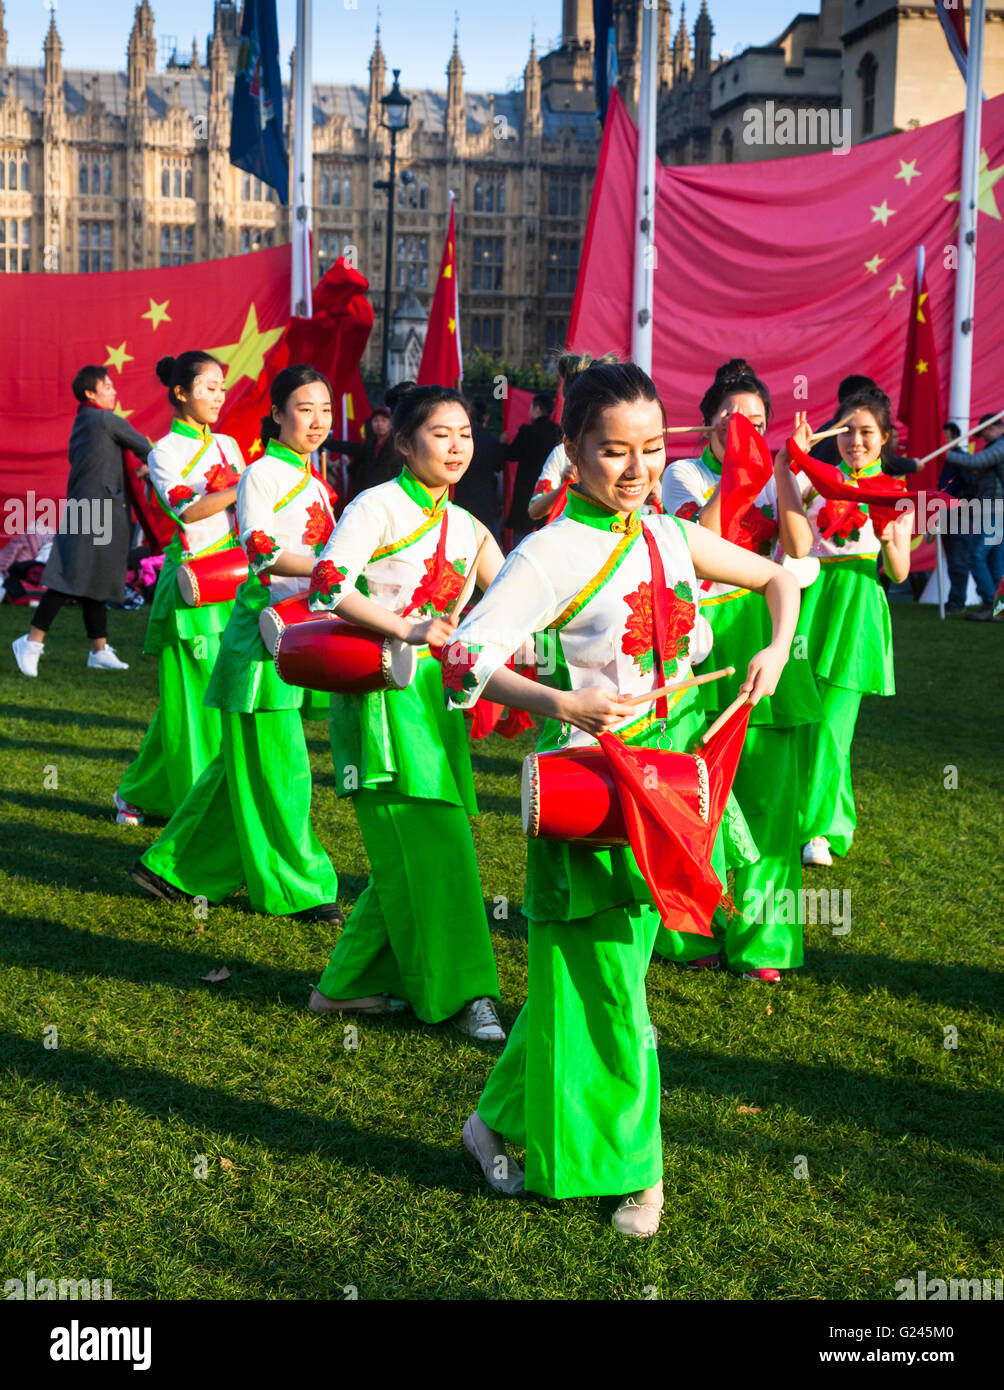 Chinese Dance Troupe performing at Parliament Square, Westminster, London, England. - Stock Image